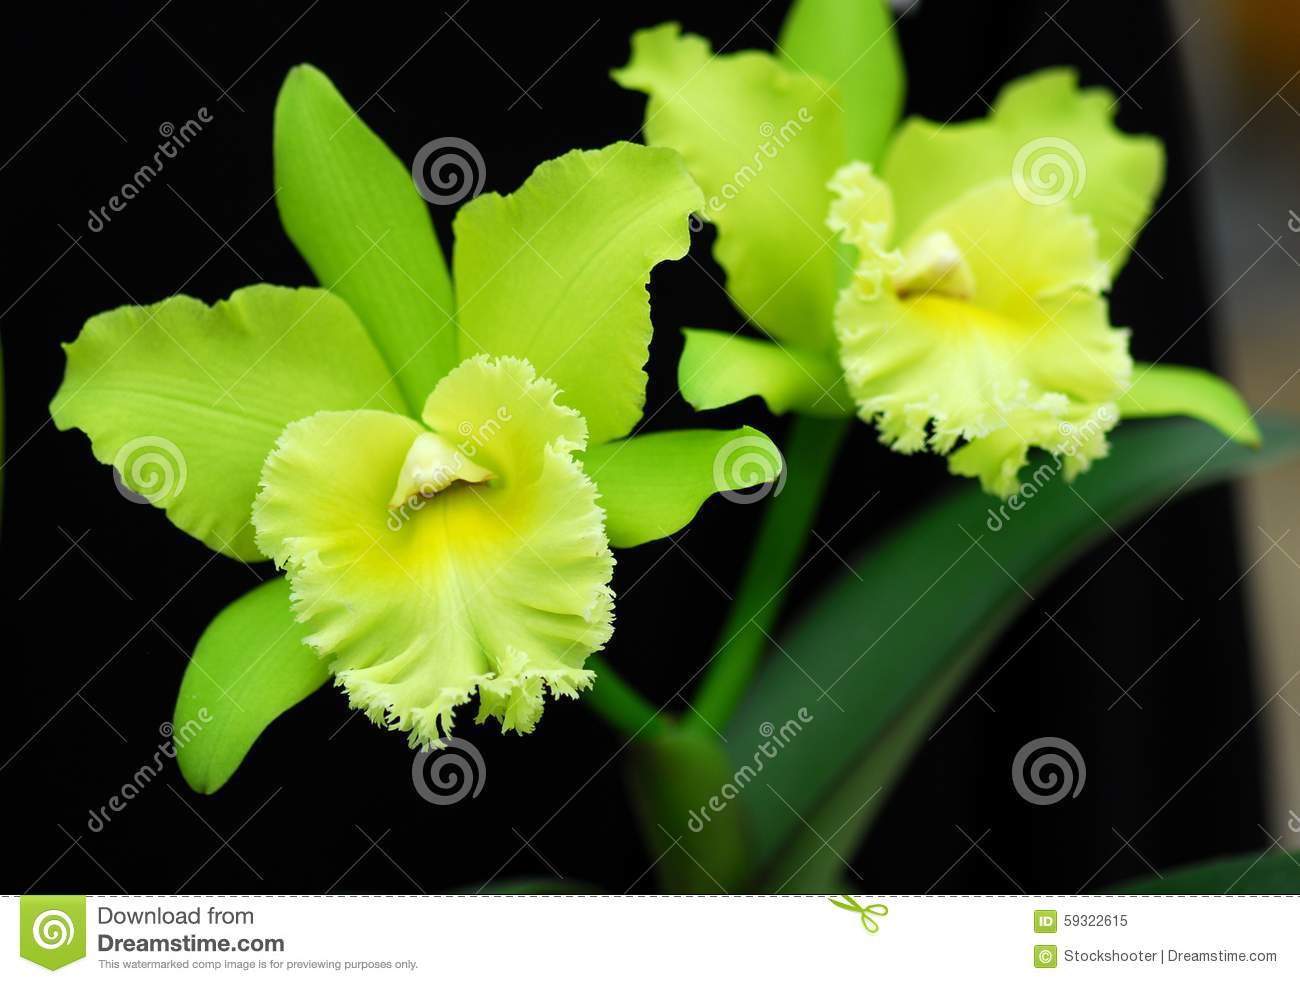 fleur verte d 39 orchid e de cattleya image stock image du rare vert 59322615. Black Bedroom Furniture Sets. Home Design Ideas